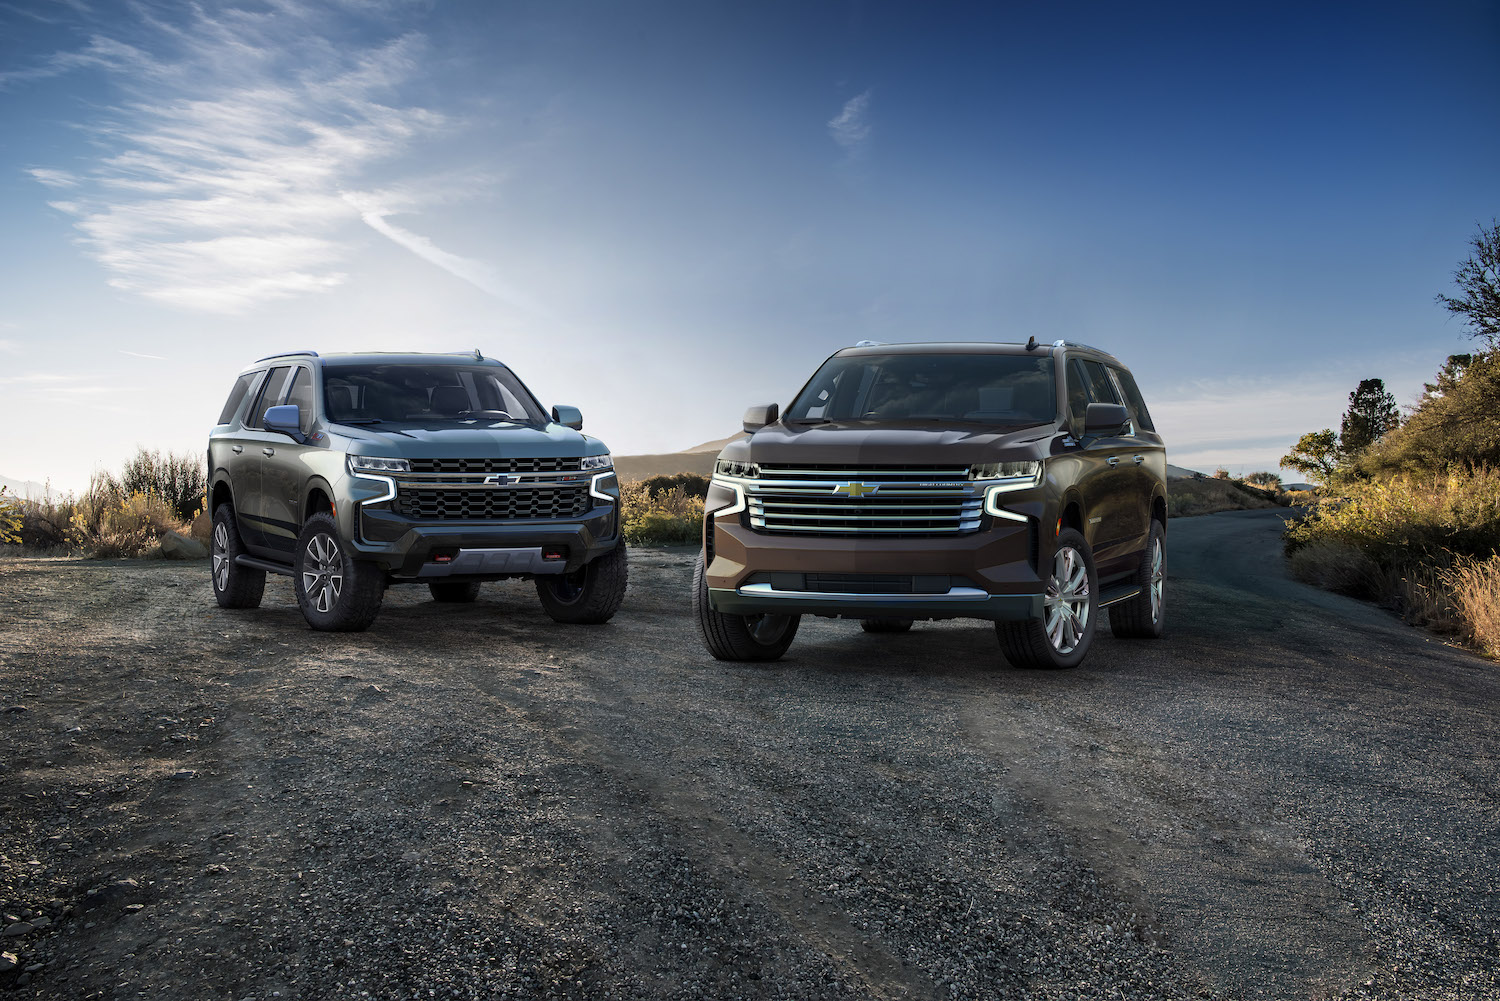 2021 Chevrolet Suburban and Tahoe revealed